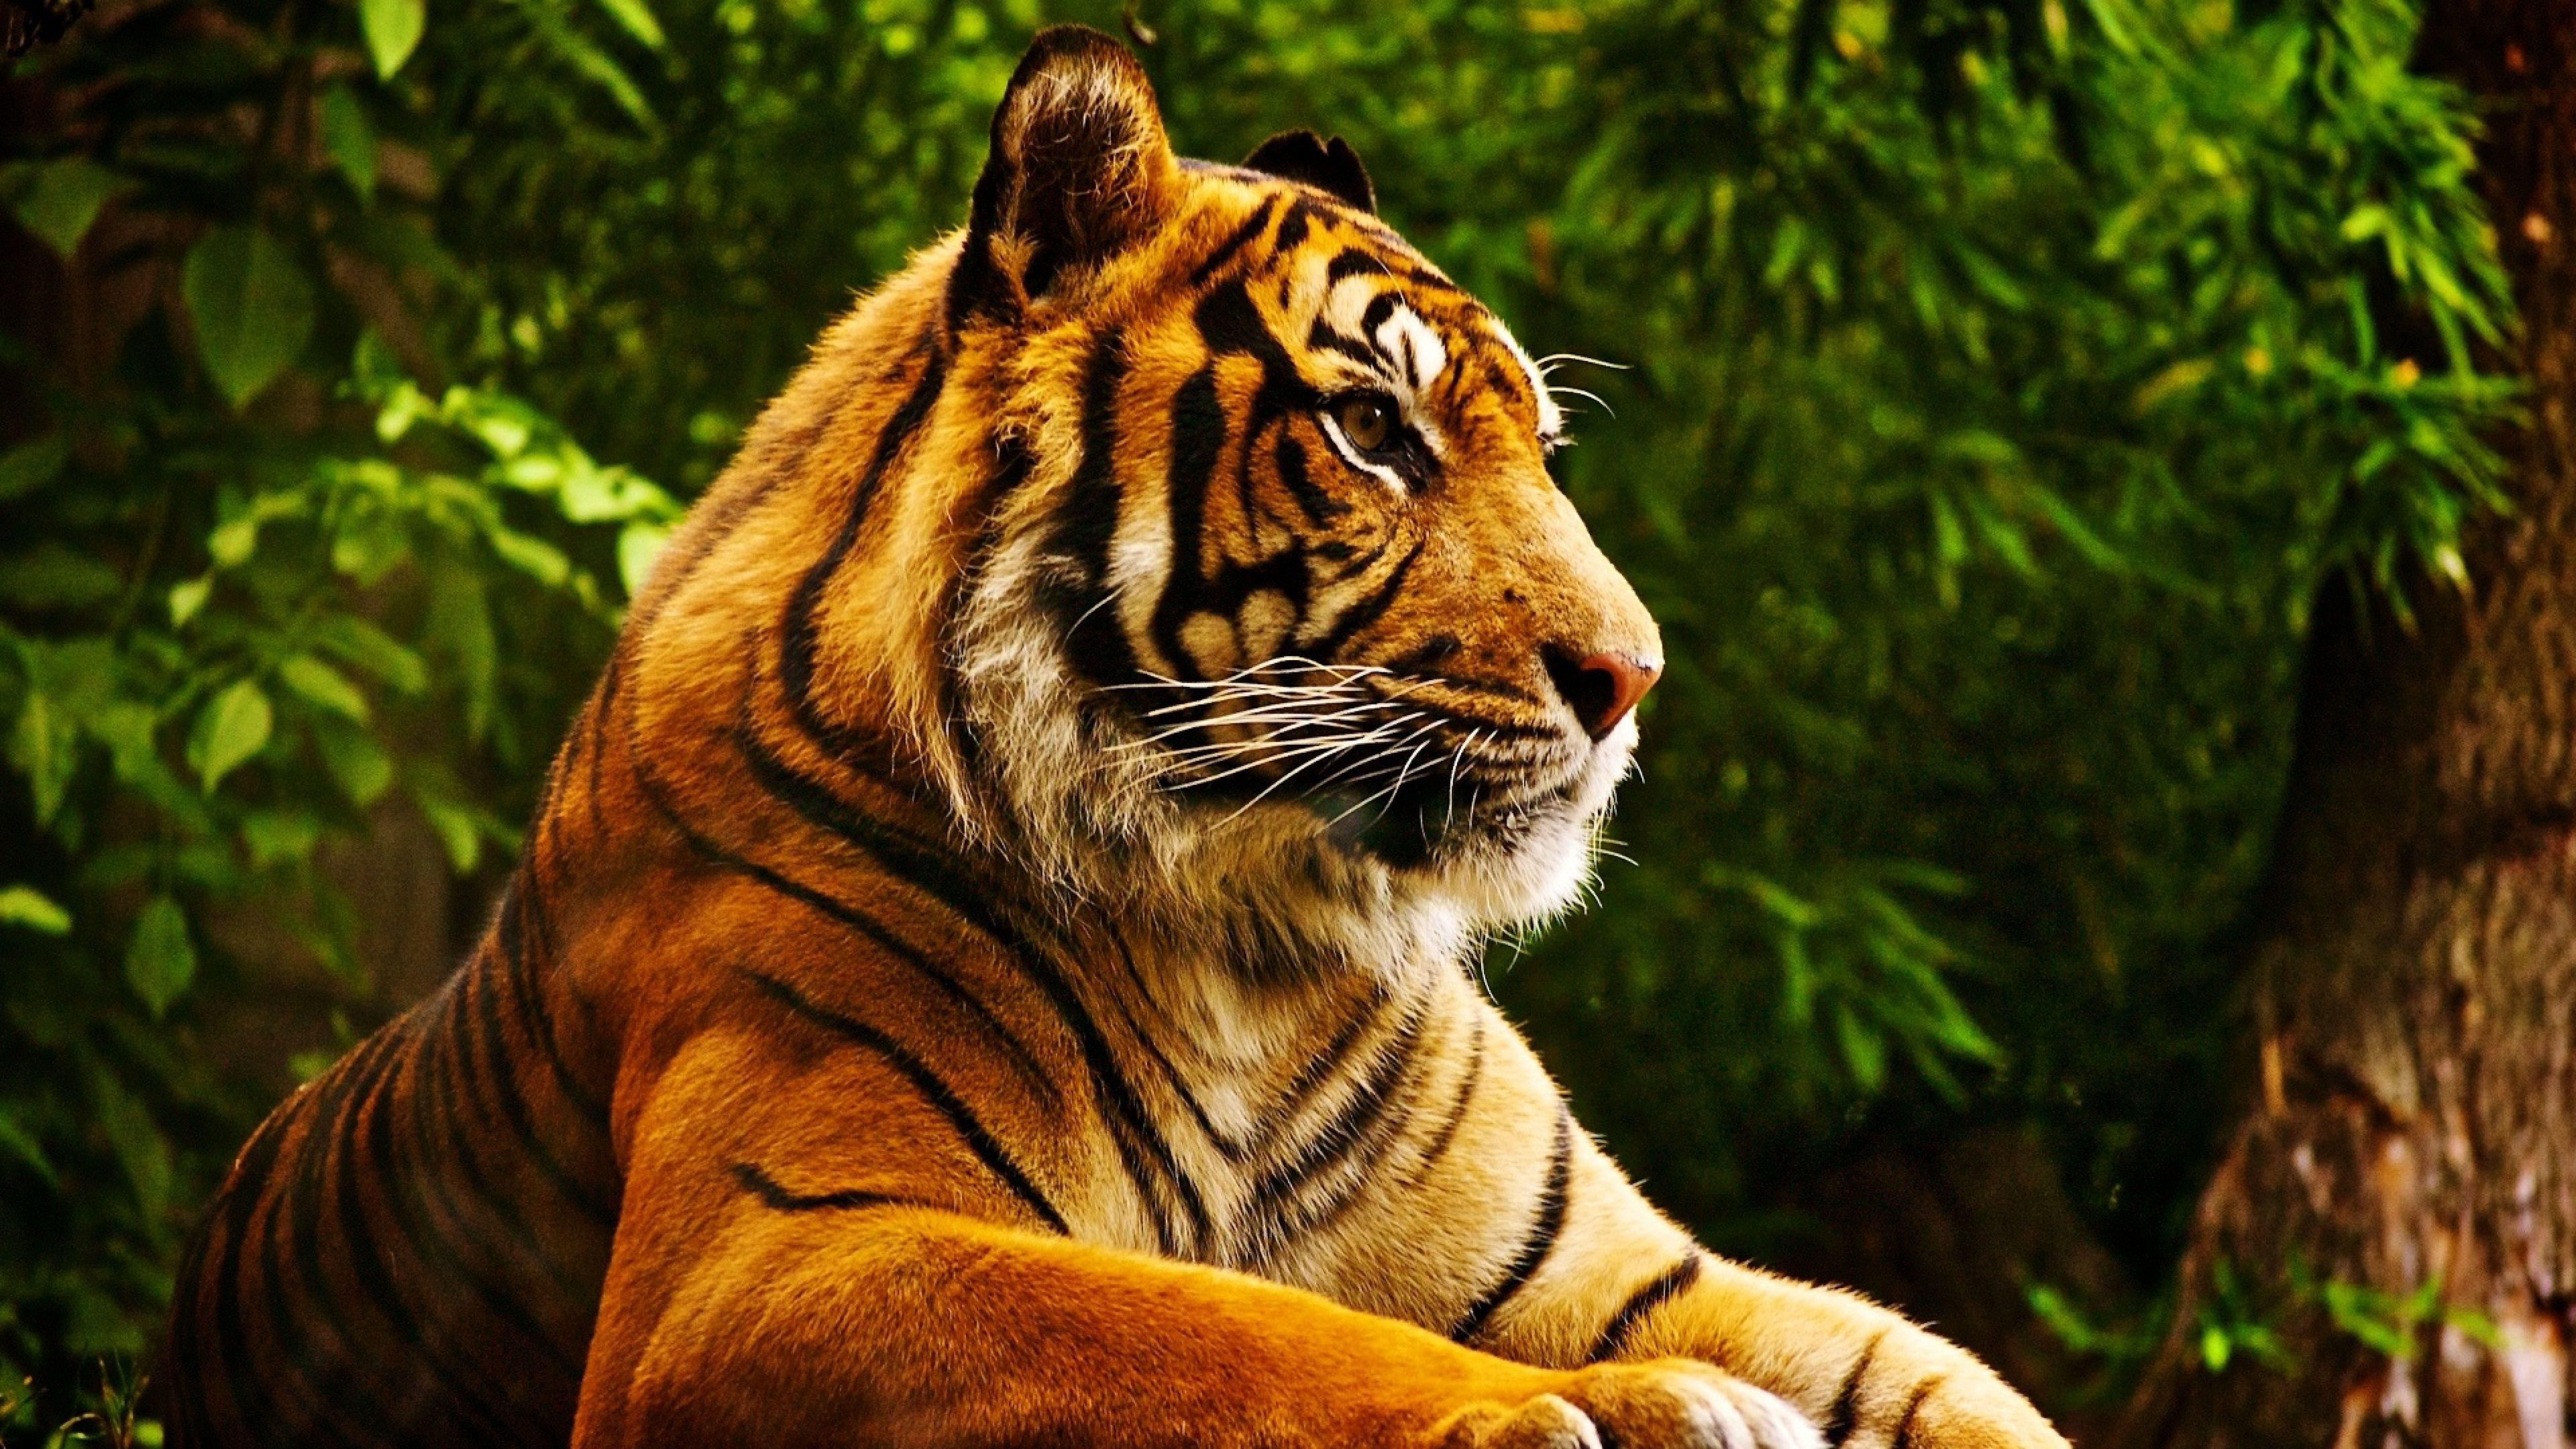 Ultra Hd Tiger Animal Wallpapers 4k